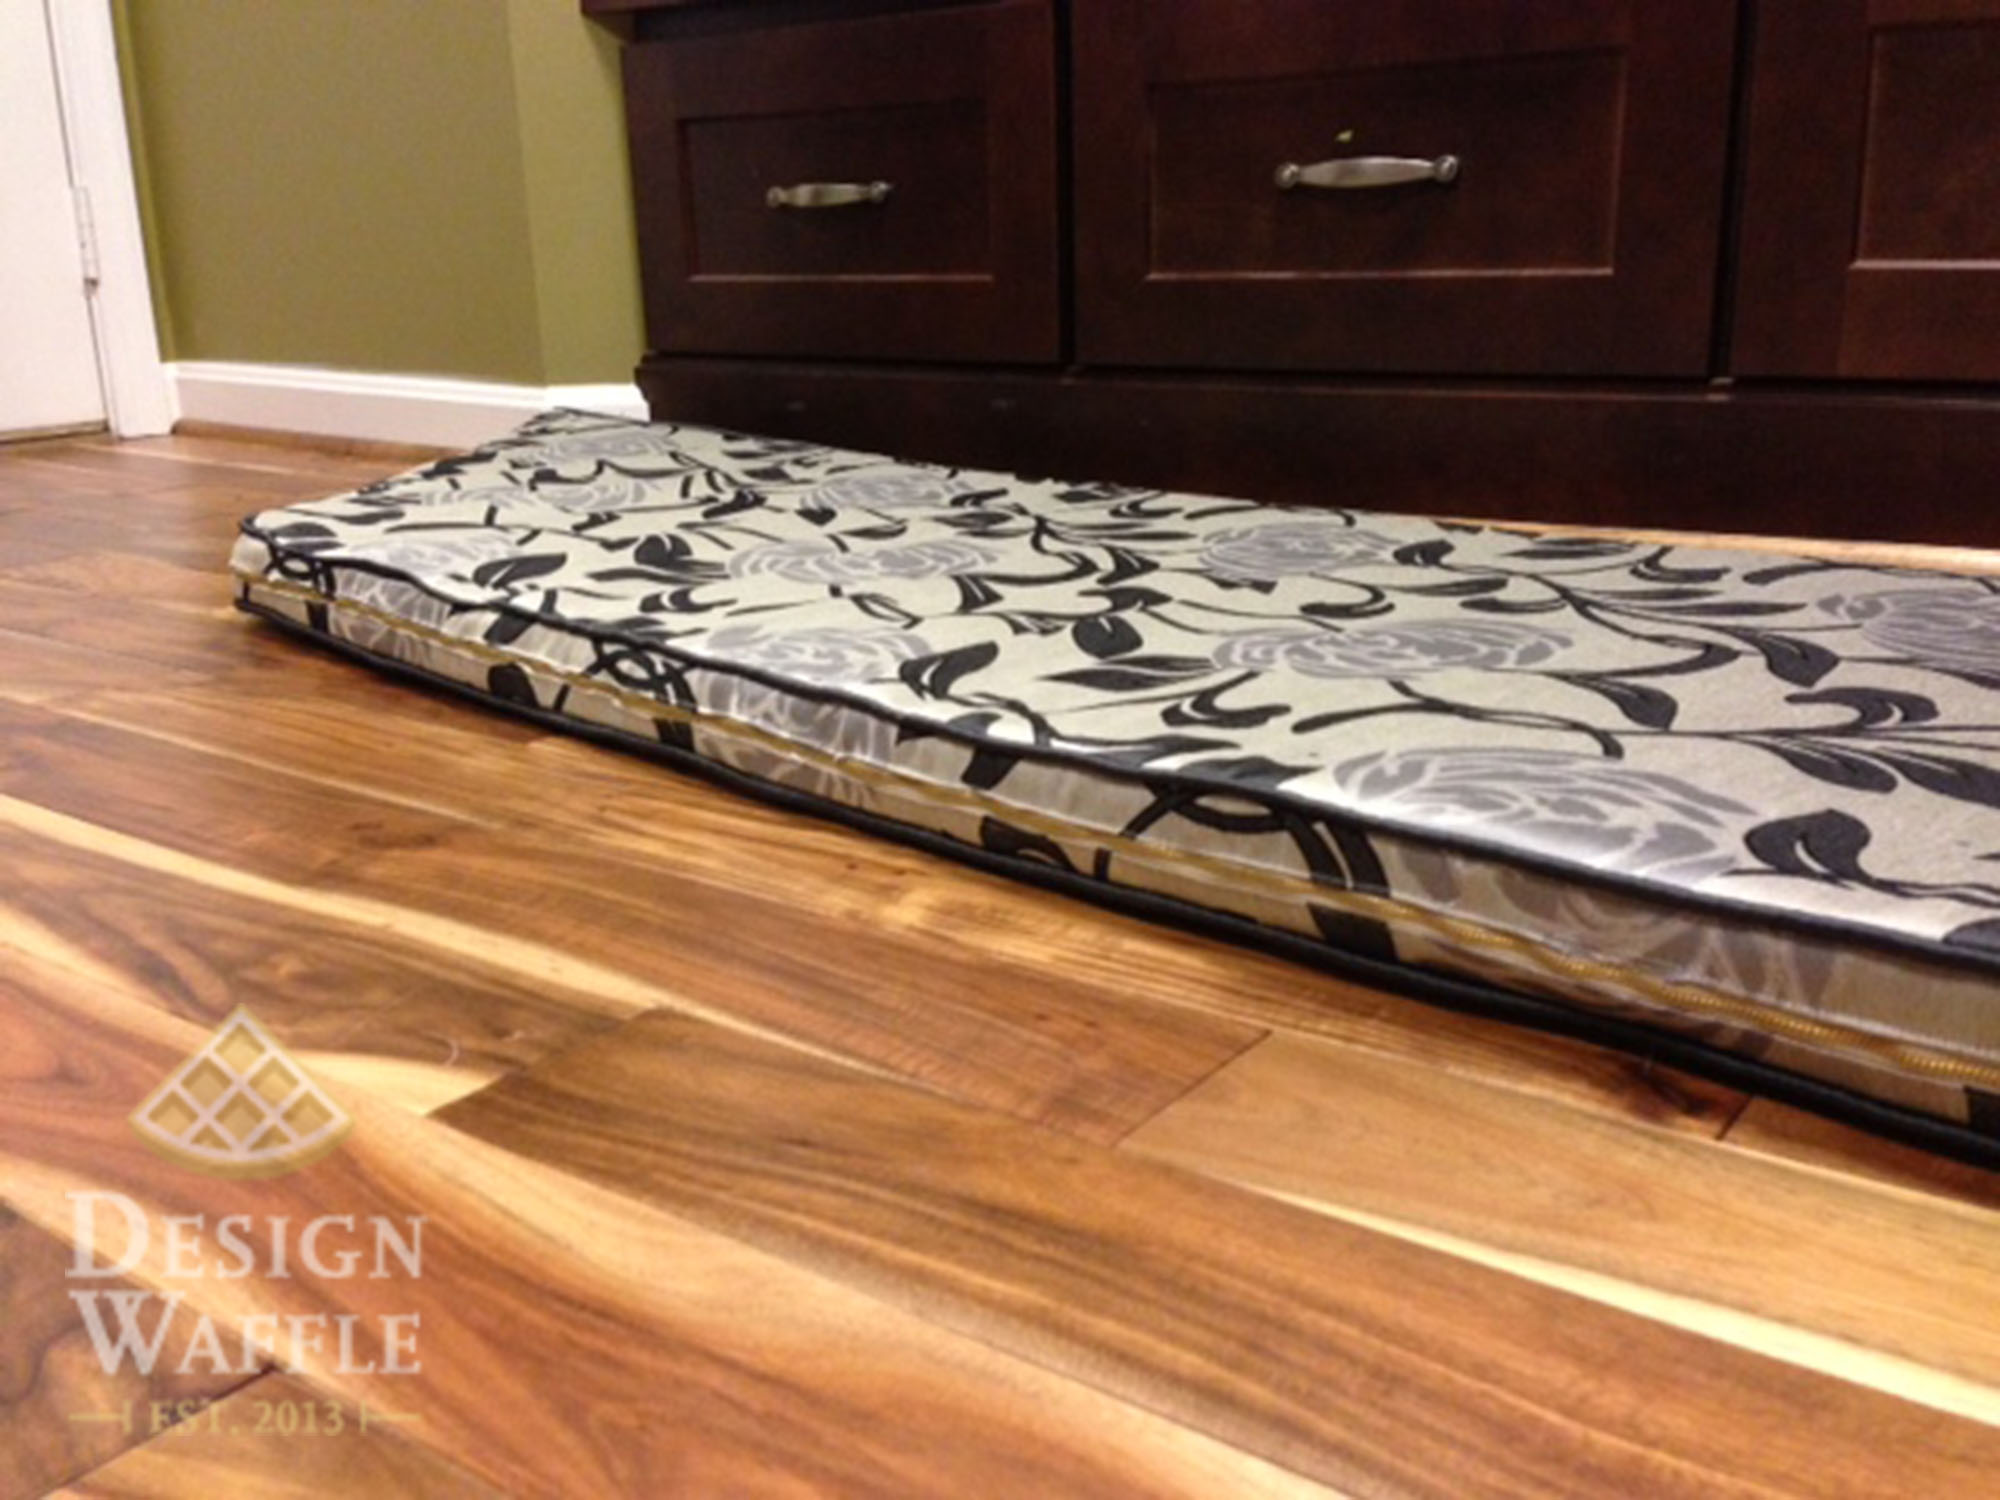 How to make bay window cushions - Diy Window Seat Cushion With Zipper